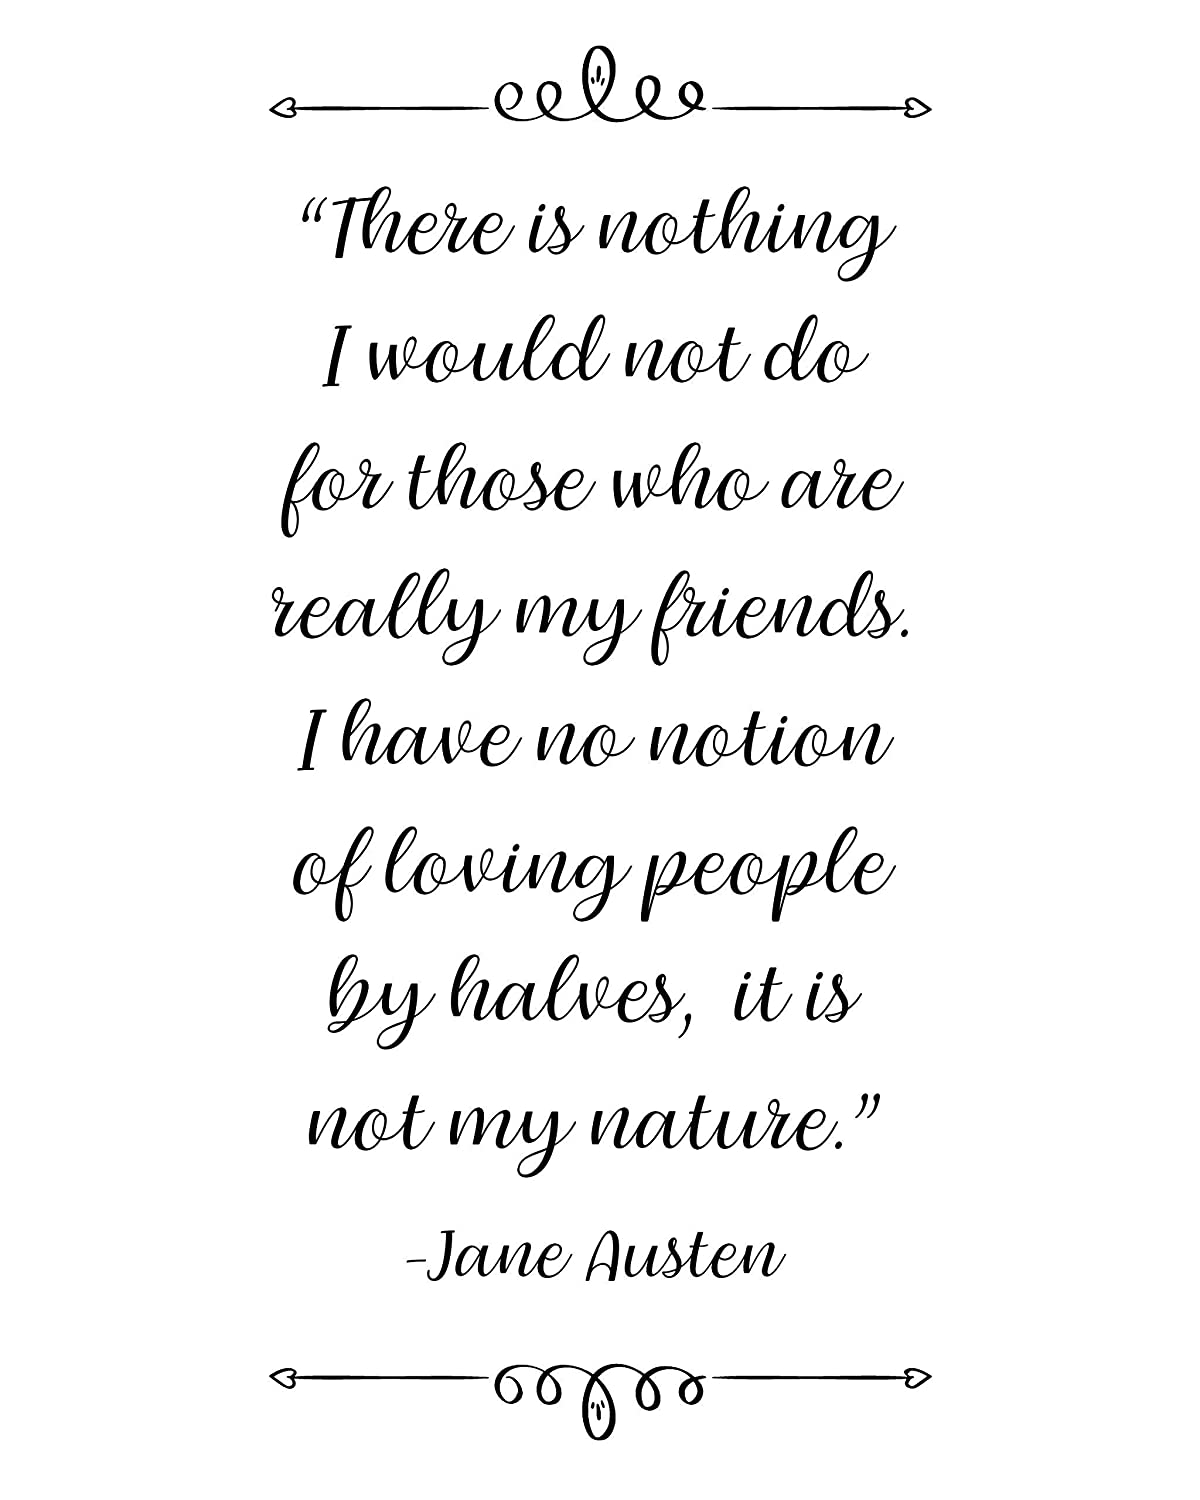 Amazon.com: Jane Austen -There Is Nothing. Quote Wall Art ...